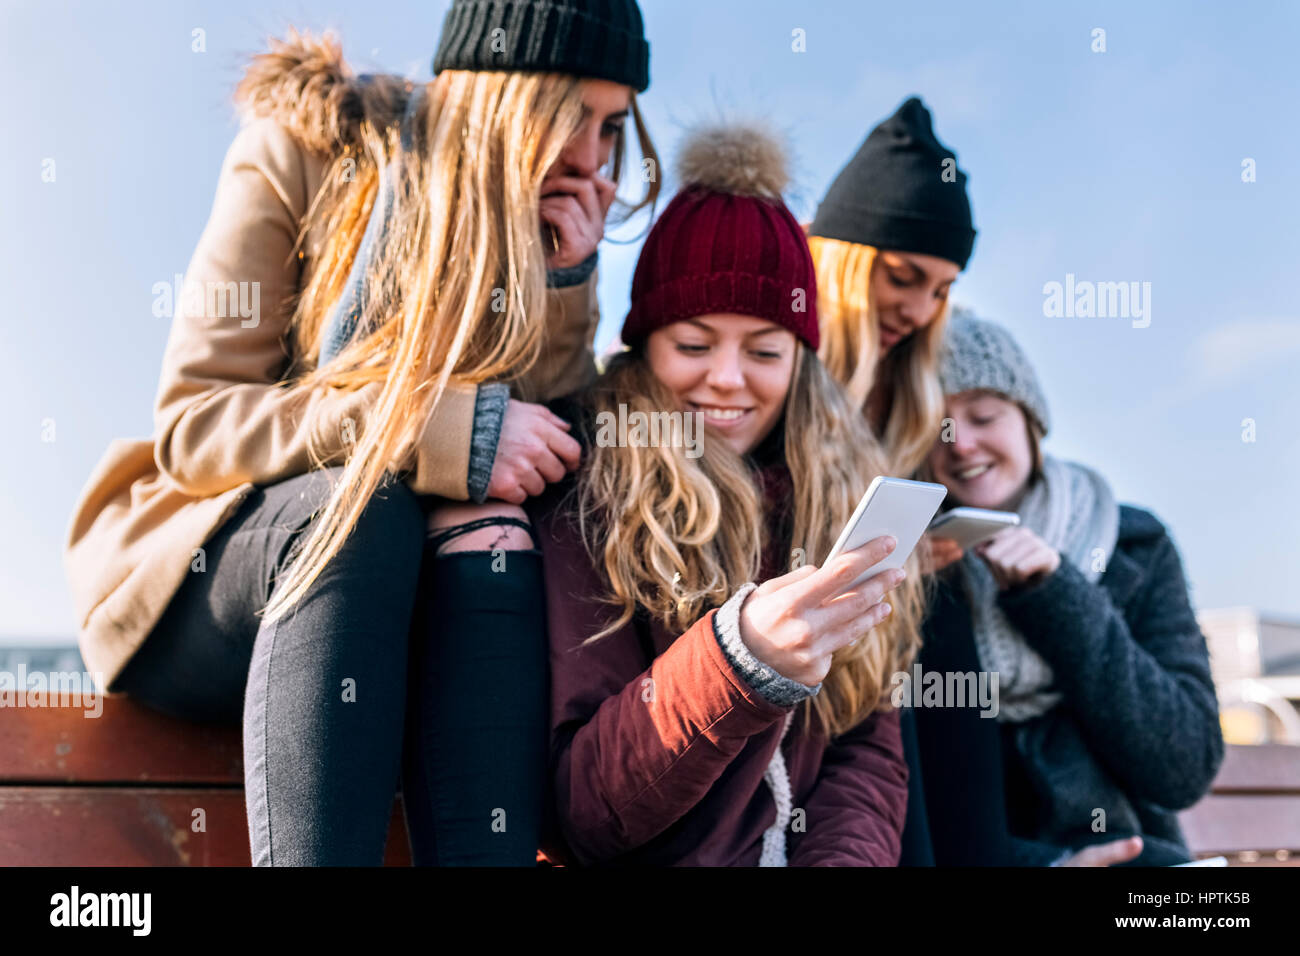 Four friends looking at cell phones - Stock Image